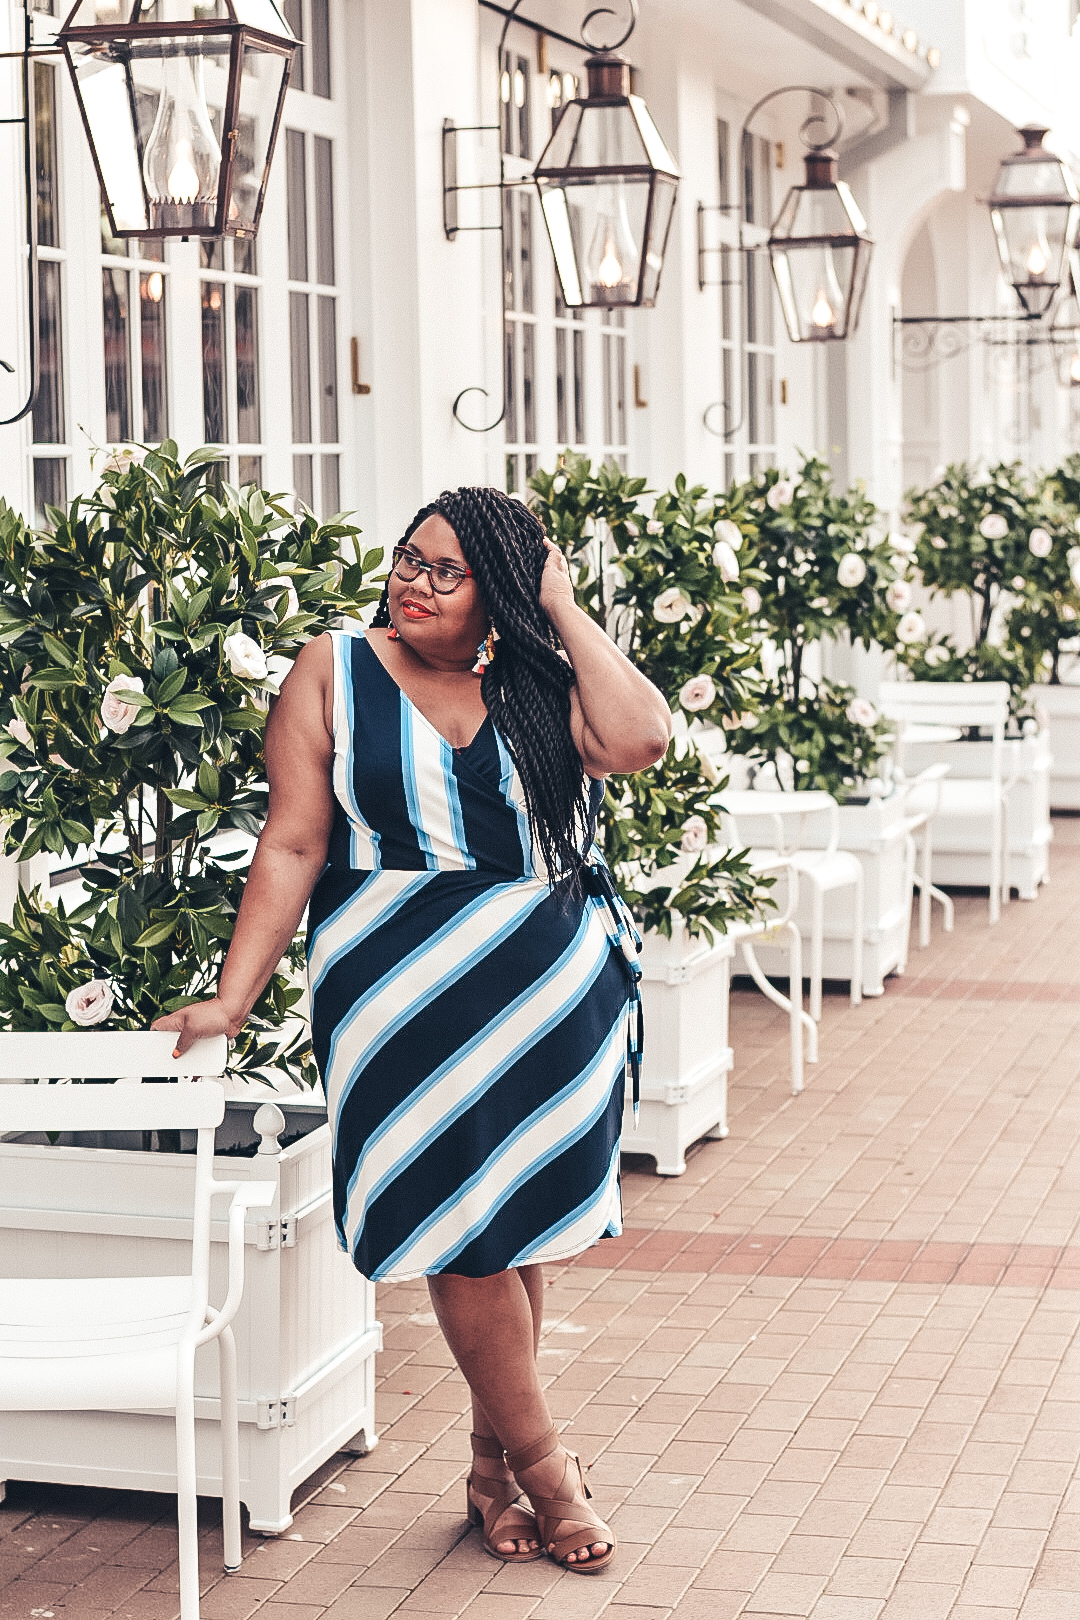 Don't mind me…I'm just enjoying the stars and this bomb striped dress! Perfect for a date night during the 4th of July!